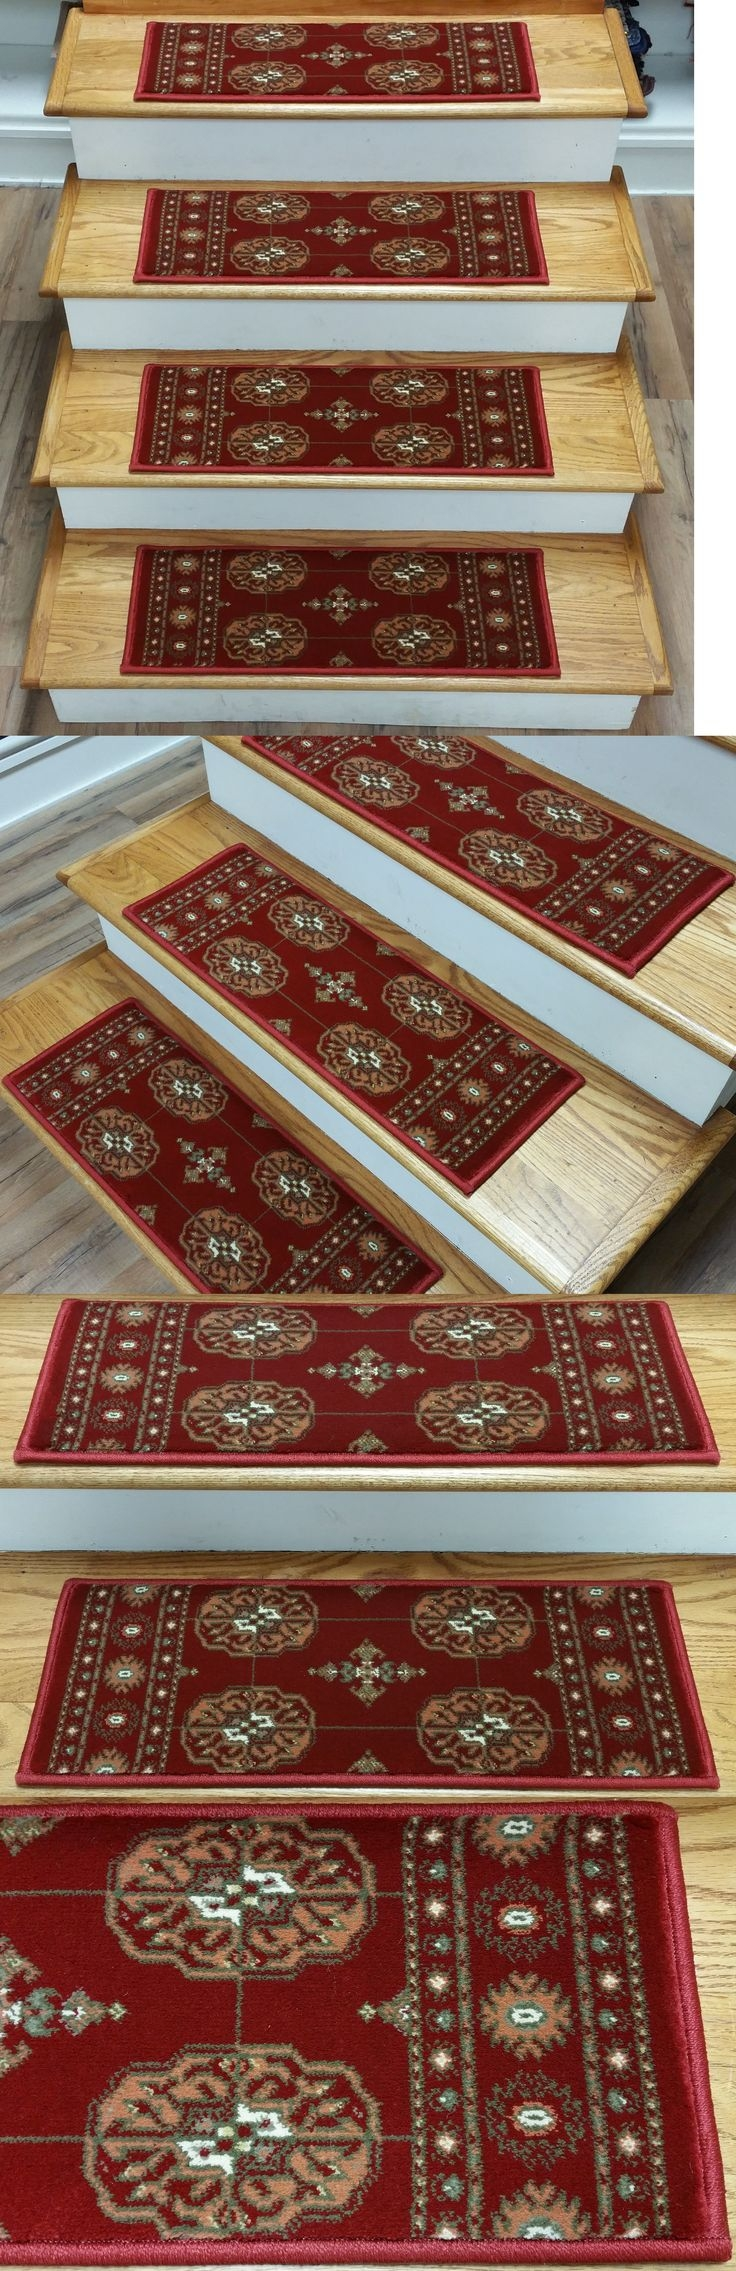 Best 20 Stair Tread Rugs Ideas On Pinterest Carpet Stair Treads With Regard To Country Stair Tread Rugs (View 17 of 20)